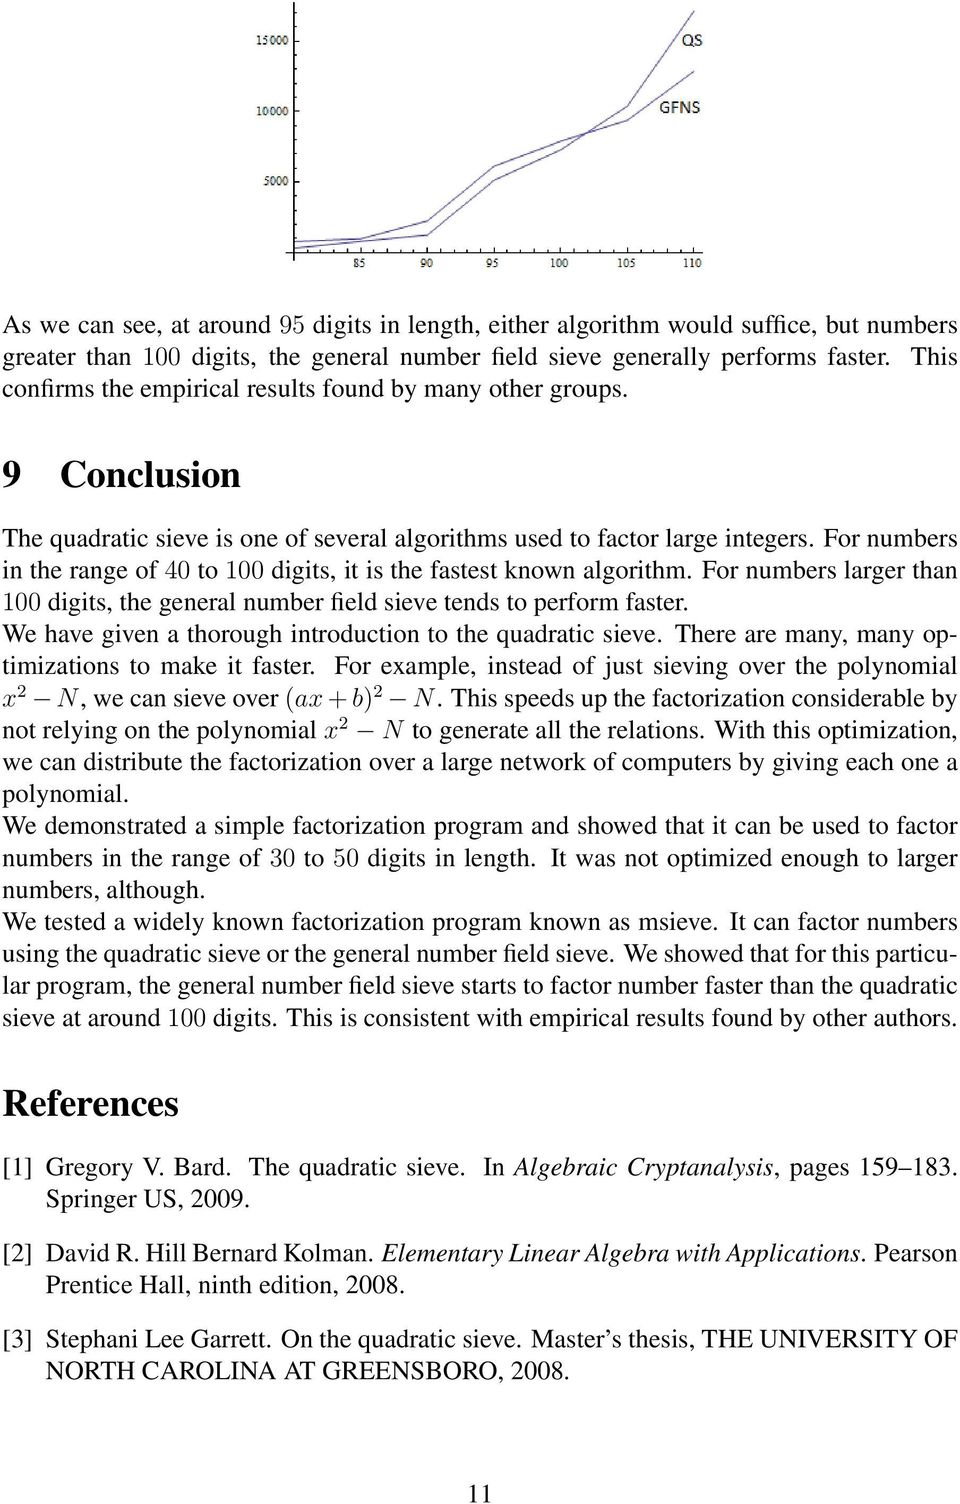 For numbers in the range of 40 to 100 digits, it is the fastest known algorithm. For numbers larger than 100 digits, the general number field sieve tends to perform faster.